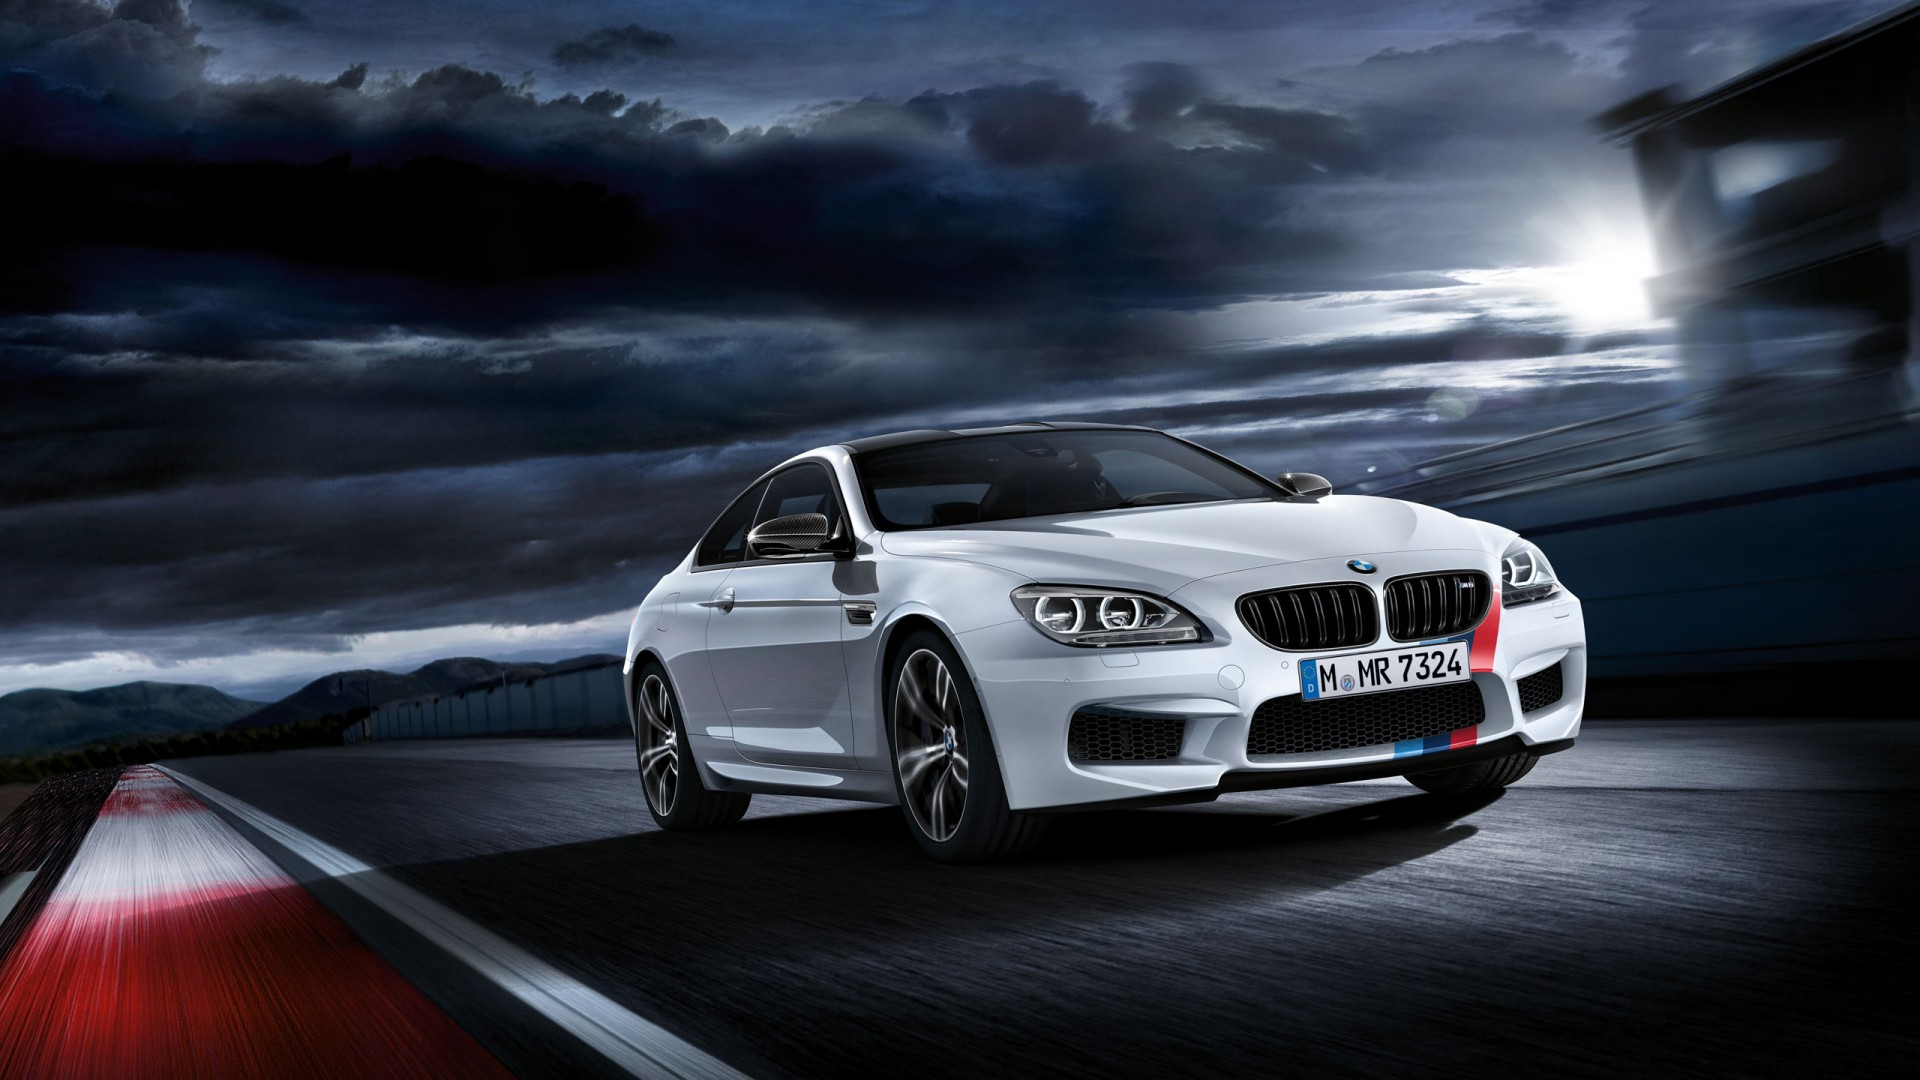 2013 BMW M6 Wallpaper | HD Car Wallpapers | ID #3918